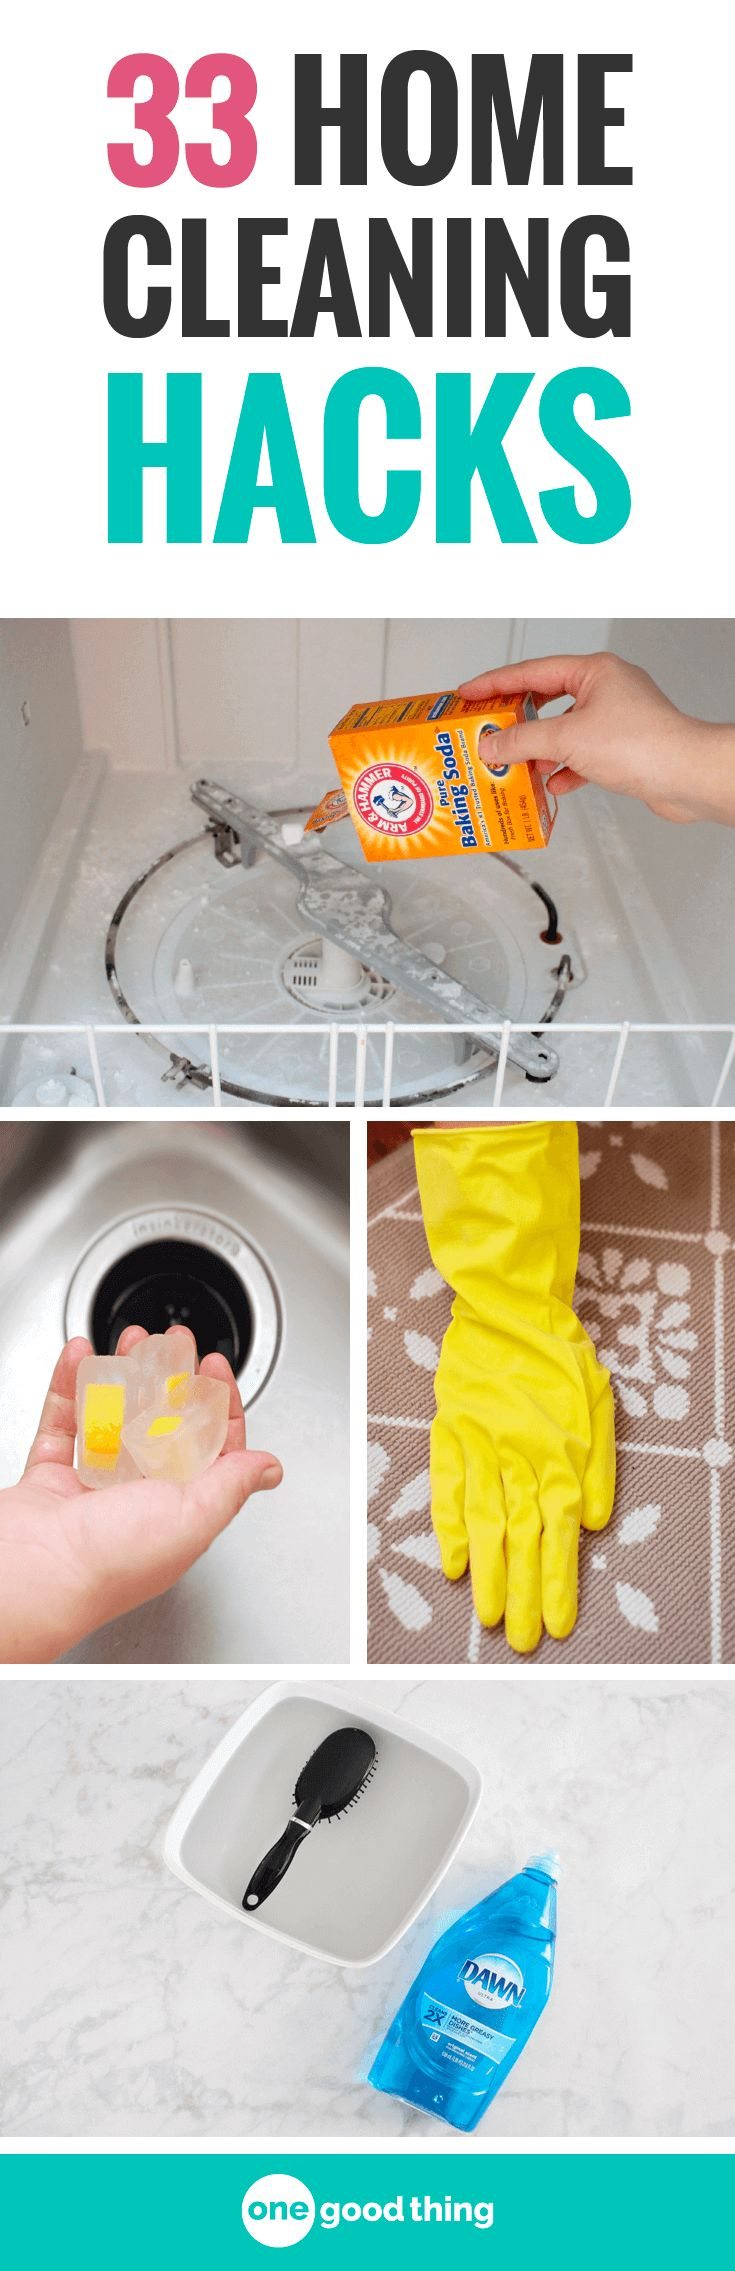 I'm sharing 33 of my all-time best cleaning hacks for your house. These clever tips will leave your house sparkling clean, while saving you time and effort! #homecleaningtips